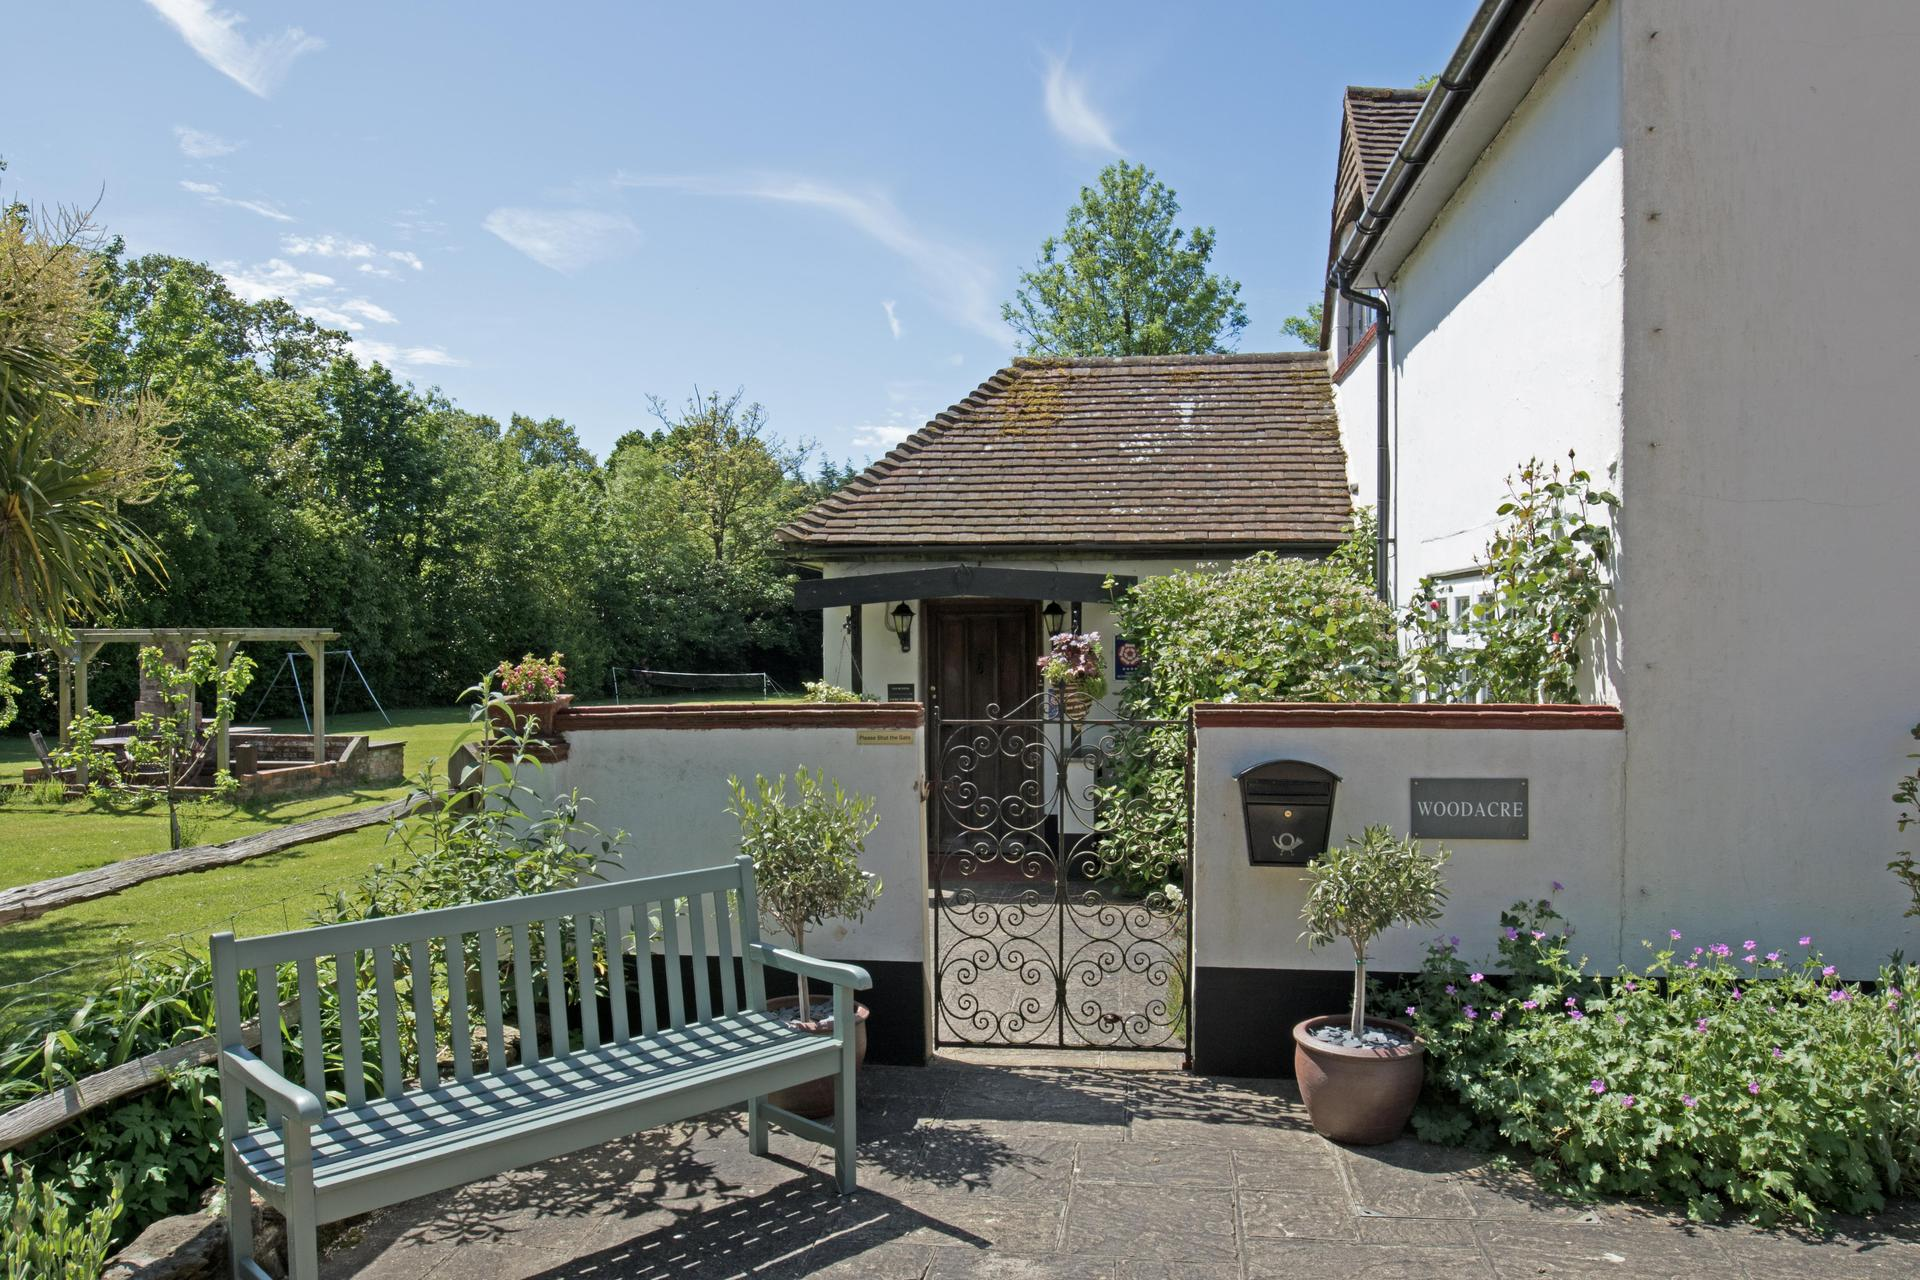 Bed And Breakfast Near Goodwood Racecourse